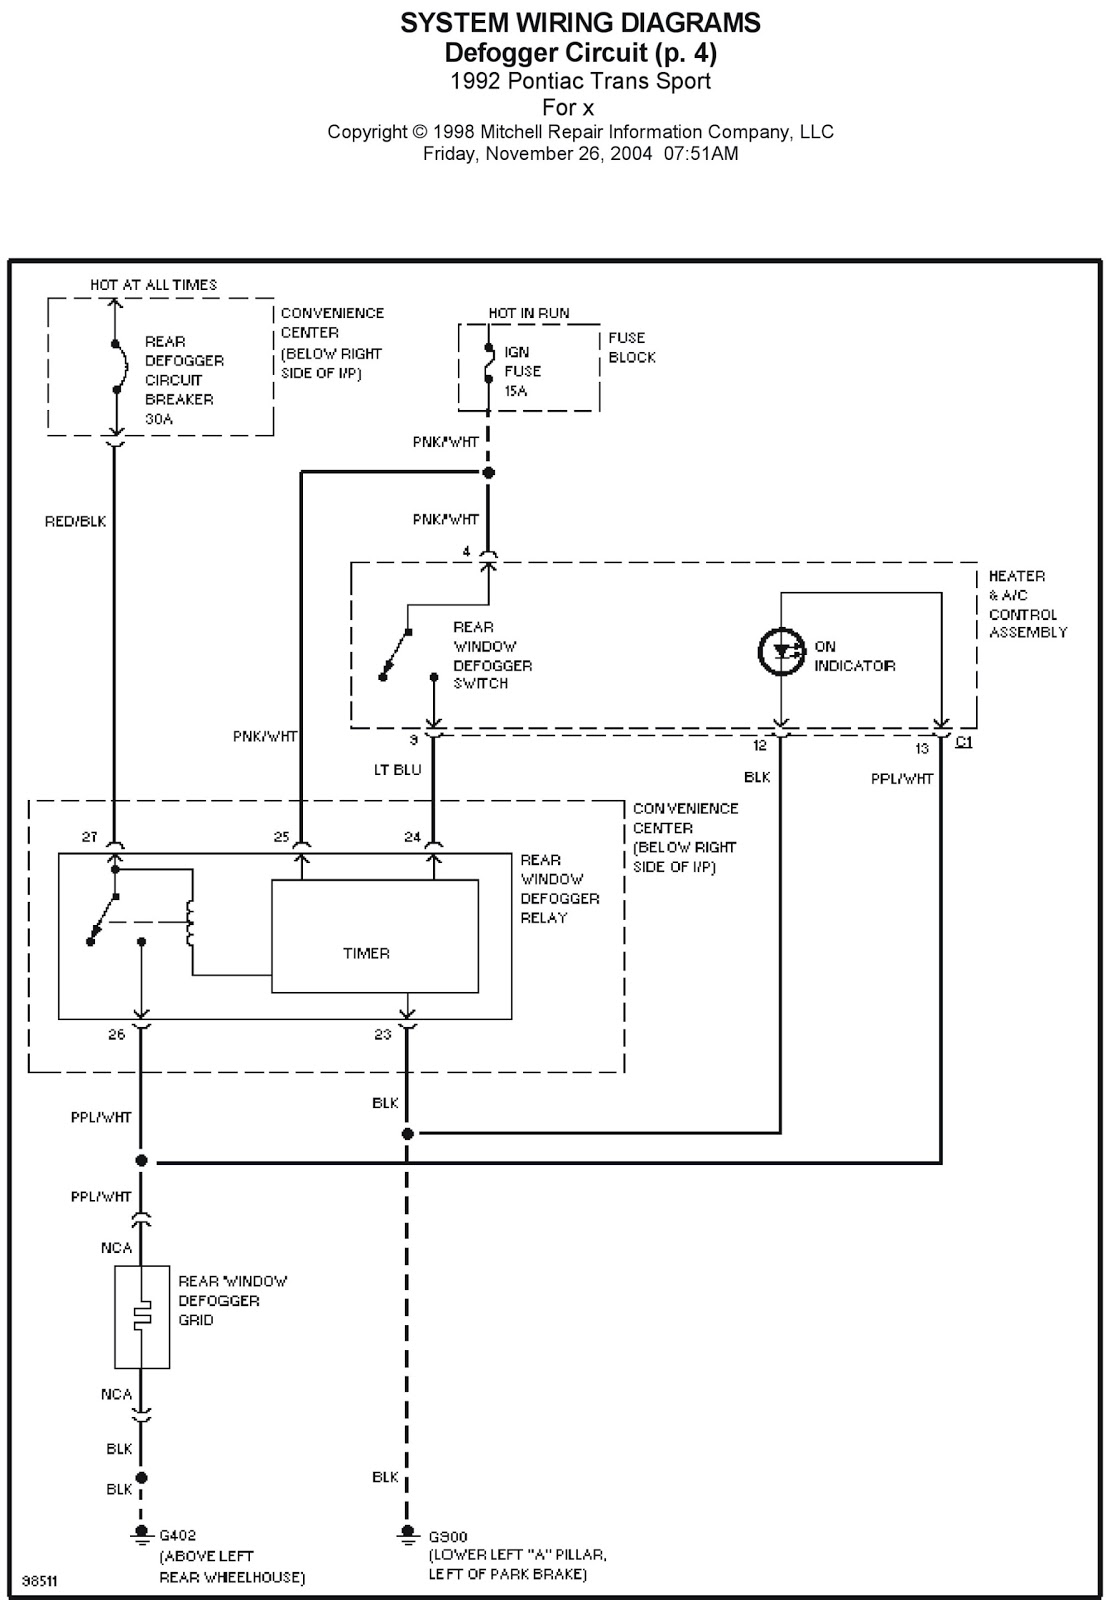 1992 pontiac trans sport defogger circuit system wiring diagrams schematic wiring diagrams